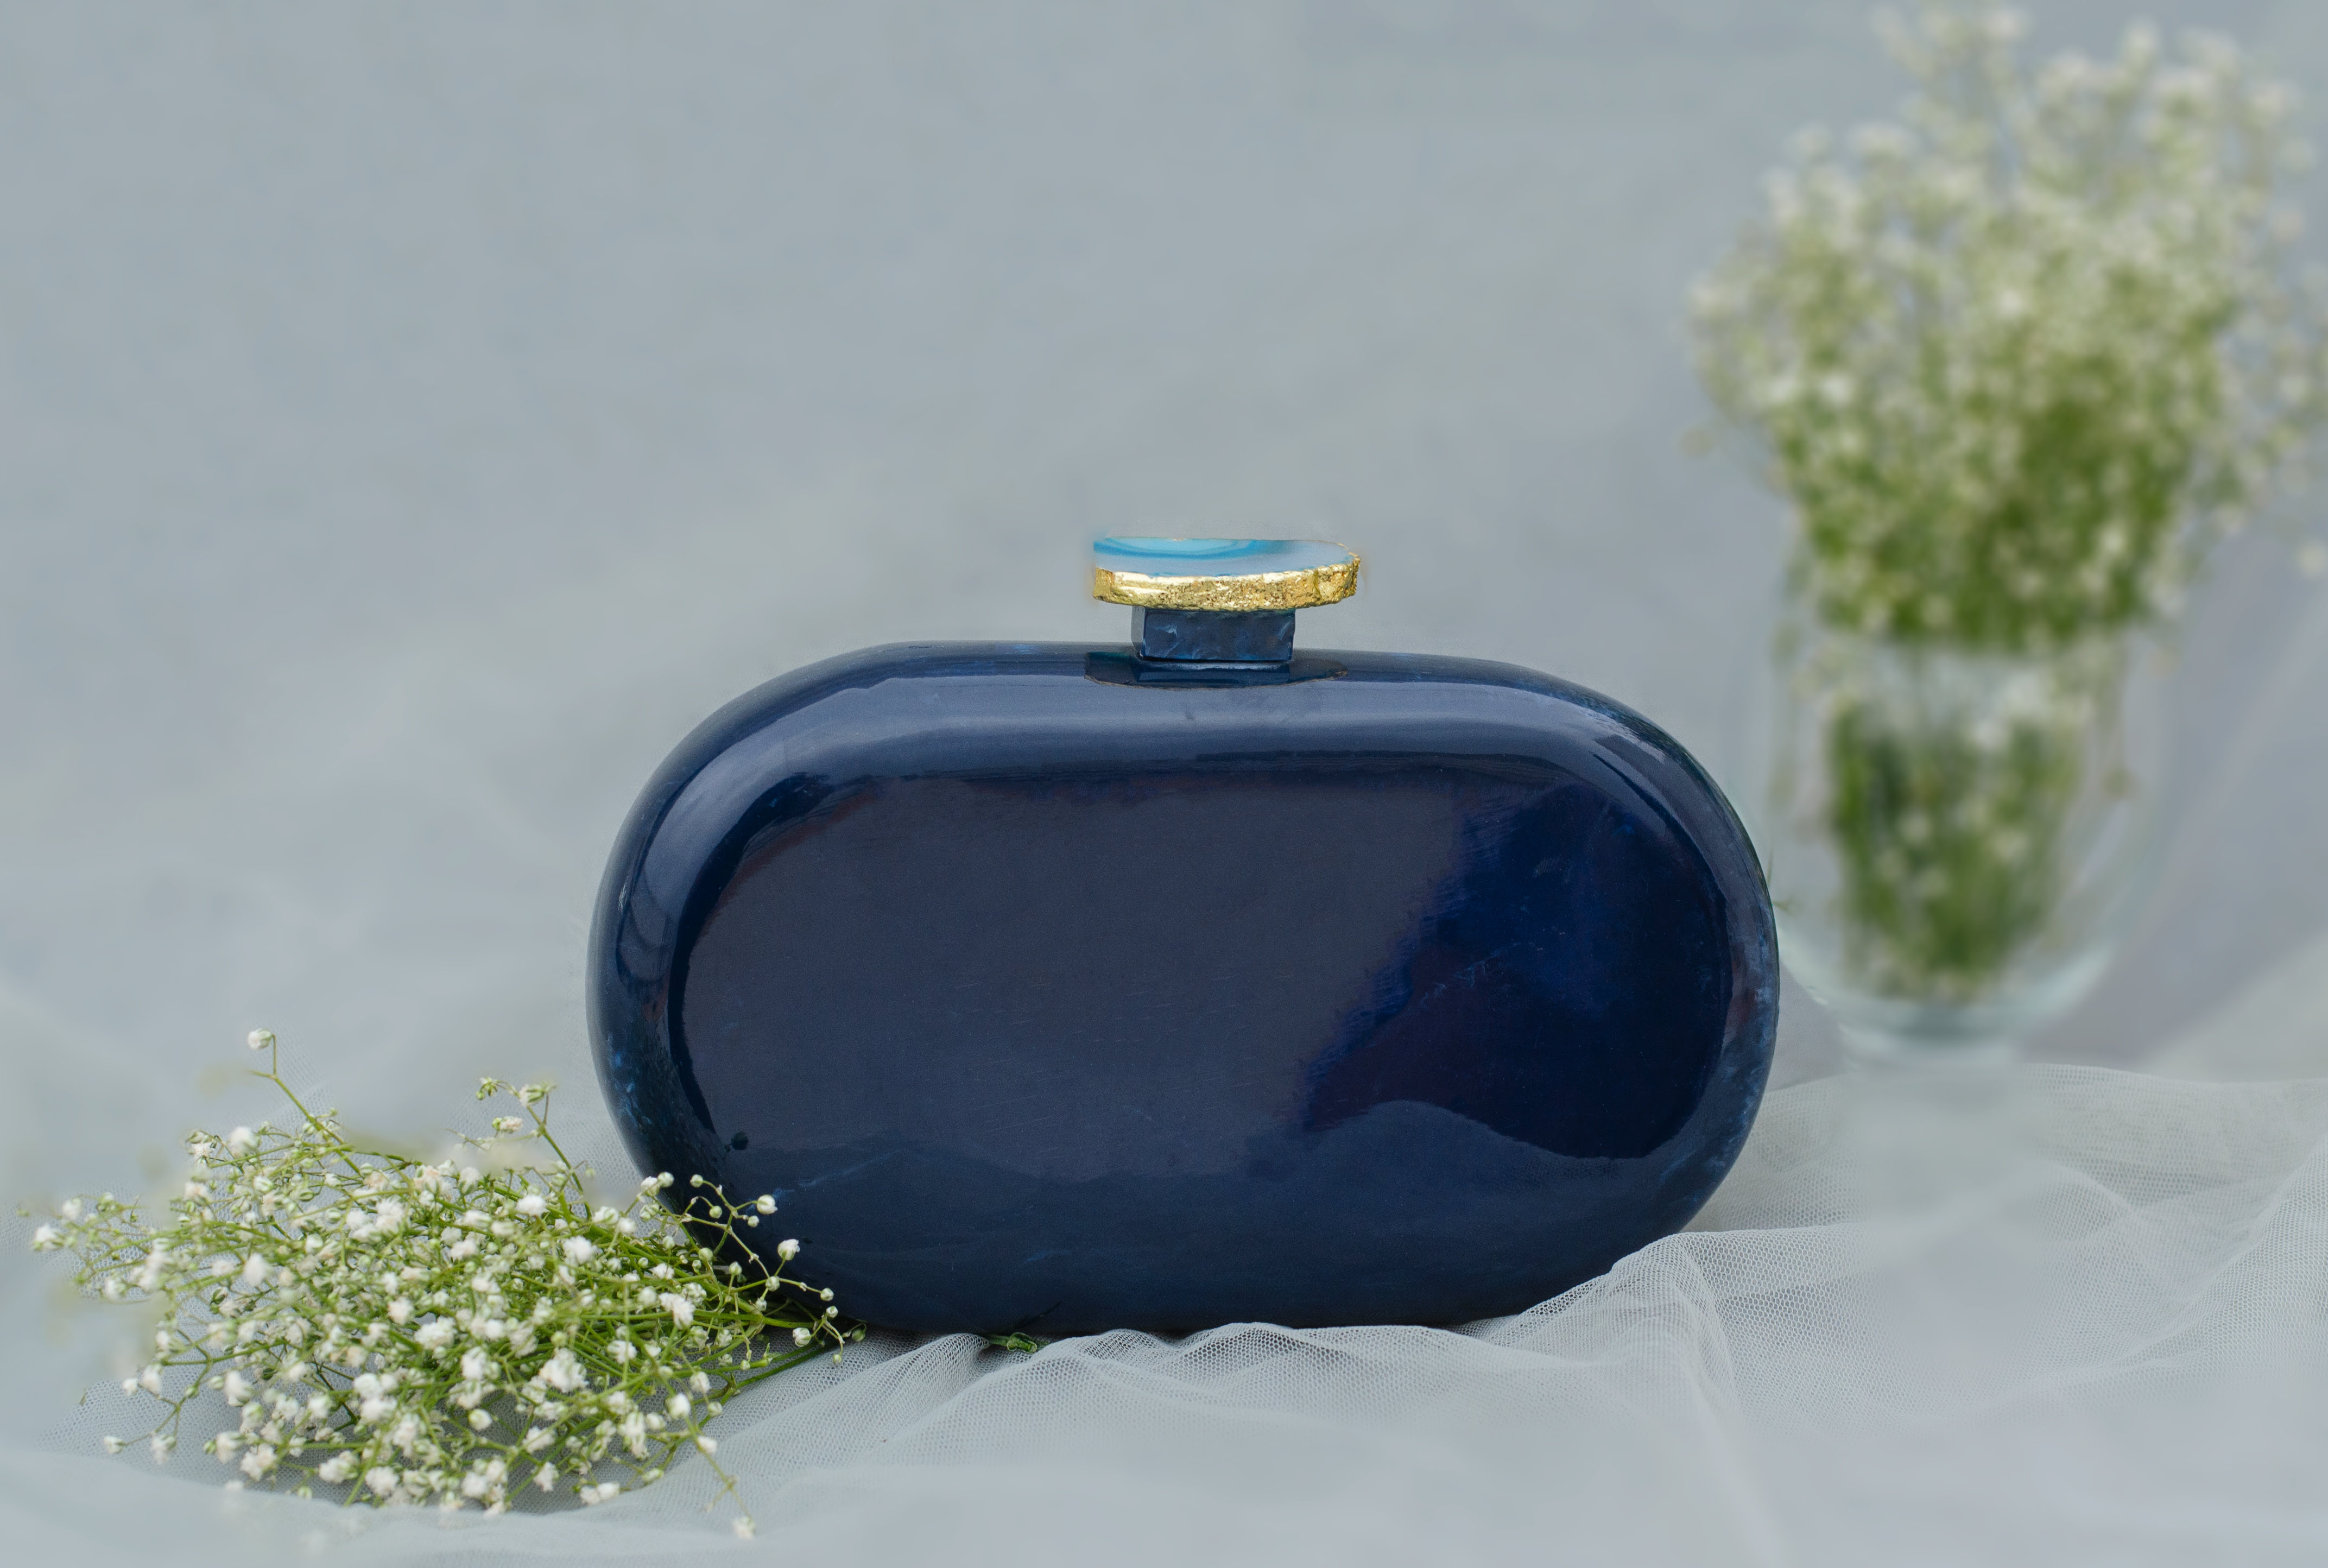 """""""Classic and Timeless designs that you can cherish forever! This Clutch is made of Blue Corian Marble - an heirloom piece that you can pass it on from generation to generation to keep the bond alive. Express yourself with this edgy Corian Clutch, handcrafted with agate stones that are irreplaceable for its natural shape and texture. It can be a perfect evening accessory to style your festive as well as your party looks and comes with a golden Sling. The Agate stone can vary in shape and color as it is a natural stone."""""""